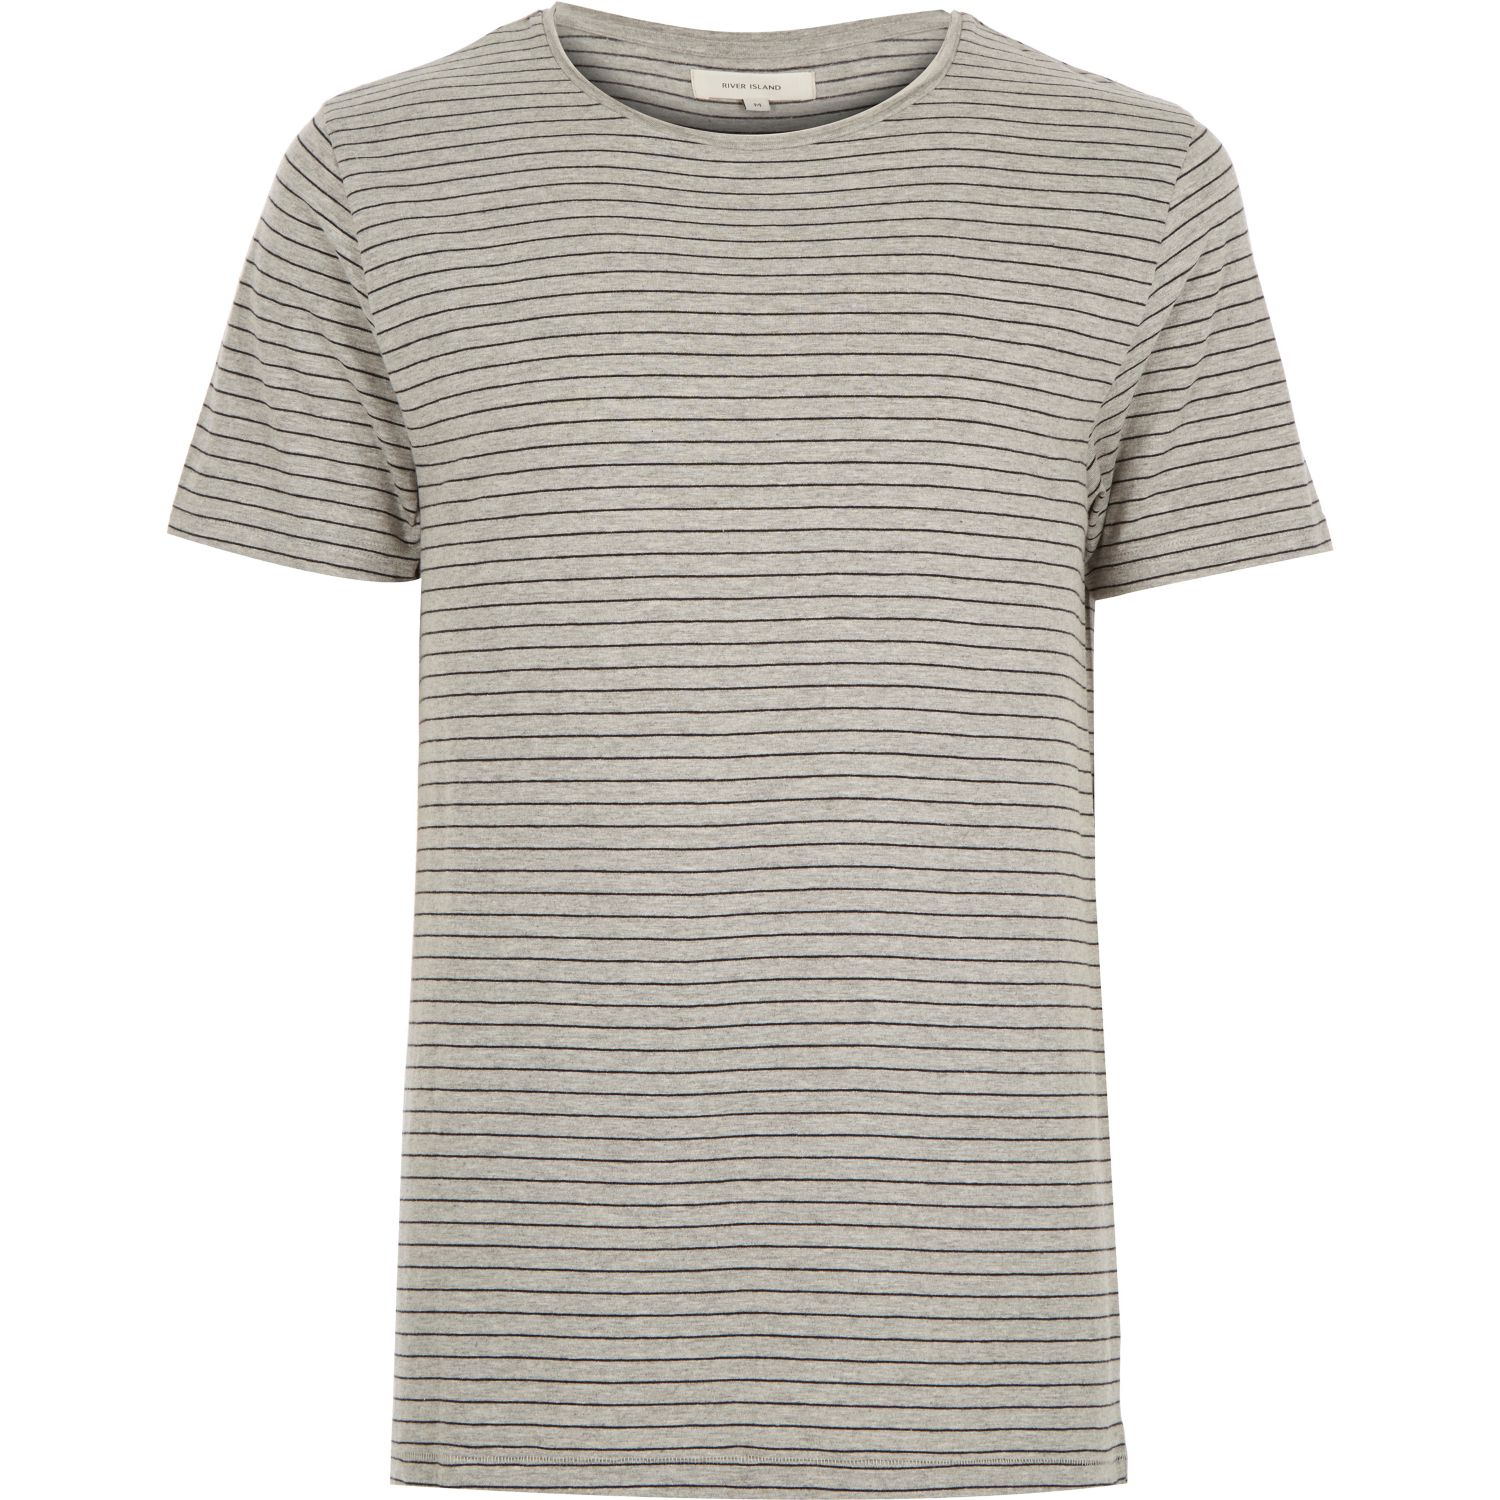 River island grey fine stripe t shirt in gray for men for Grey striped t shirt